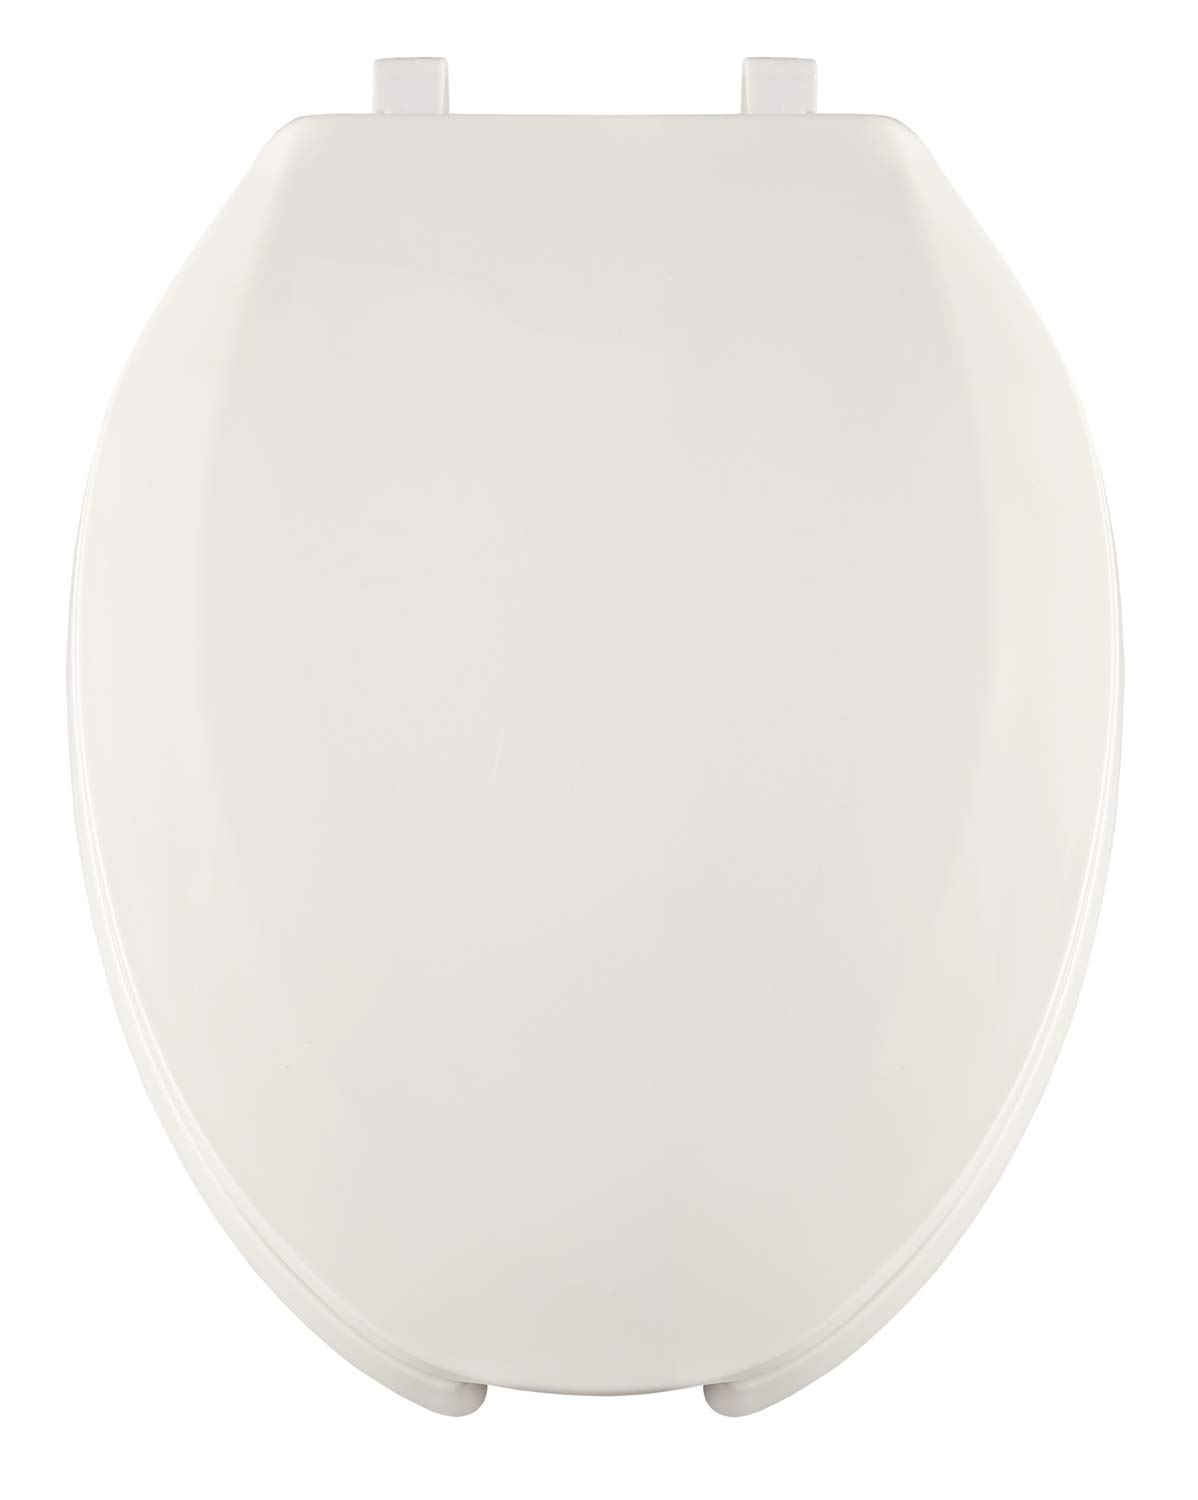 Open Front with Cover White Heavy Duty Commercial Use Centoco 820STS-001 Elongated Plastic Toilet Seat Stainless Steel Hinge